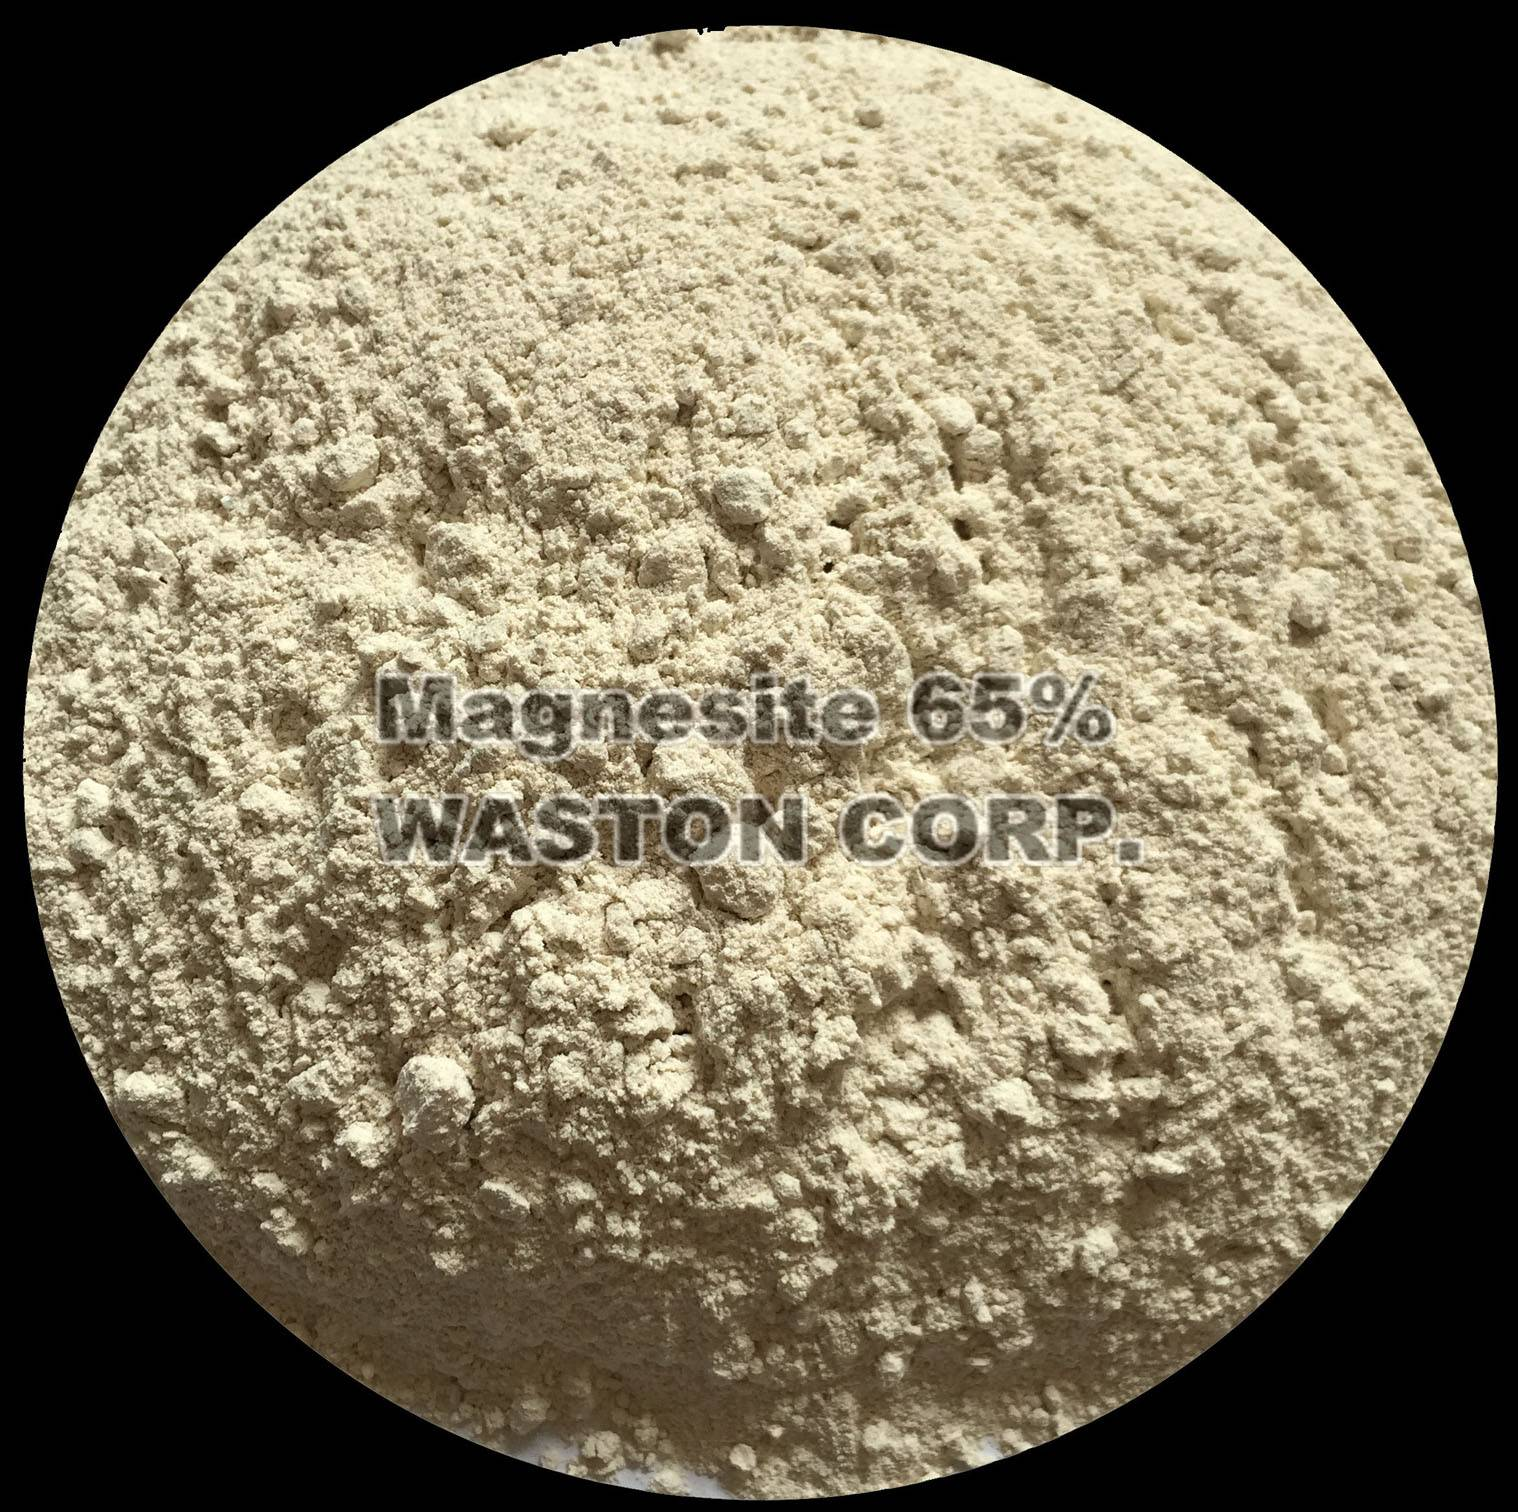 caustic calcined magnesite 65%